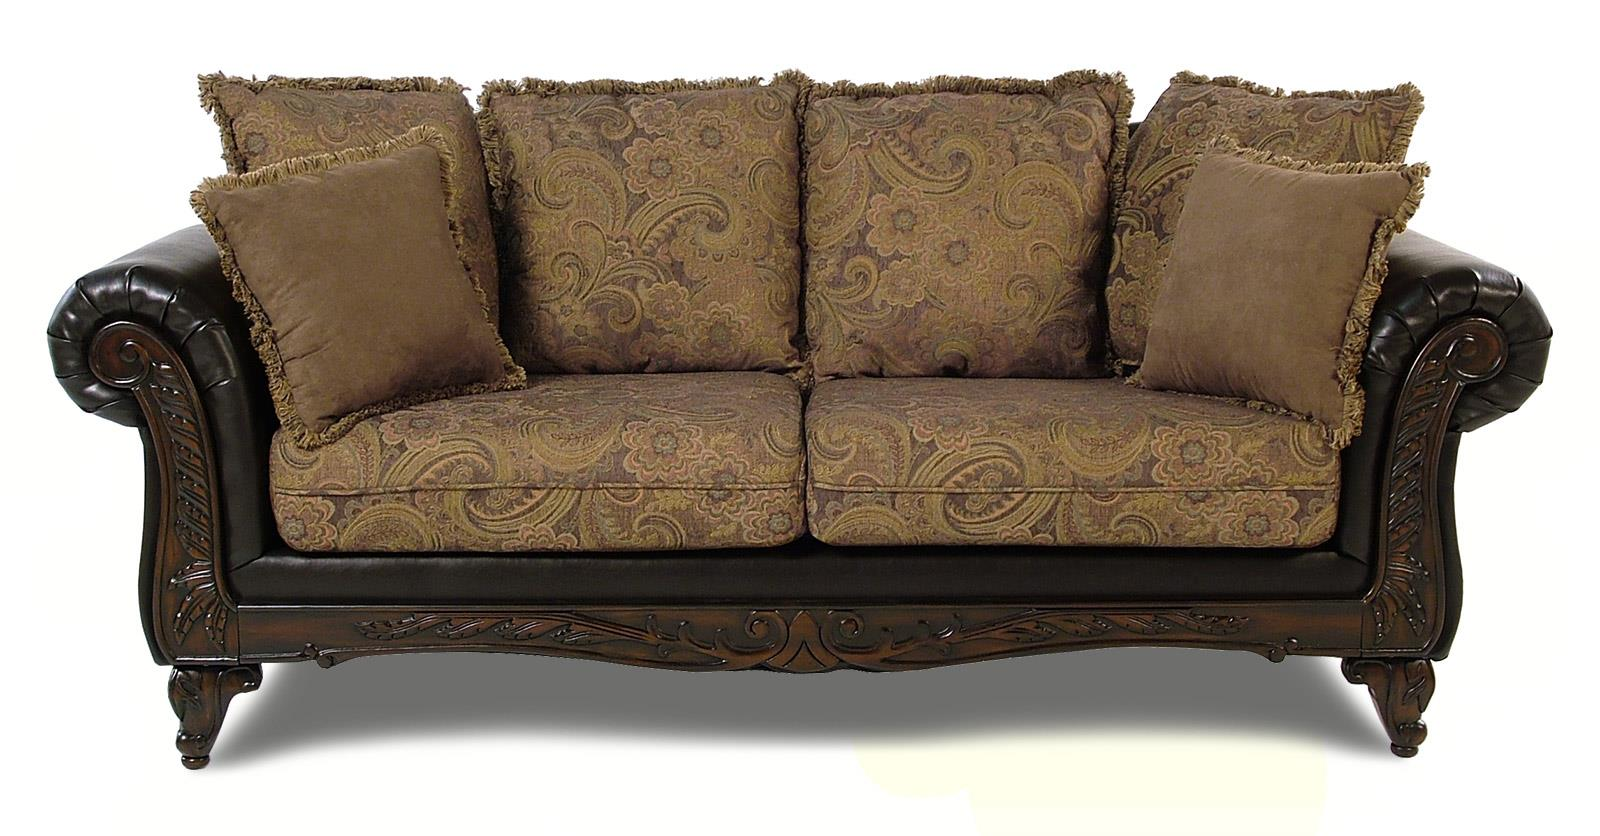 Serta Upholstery Monaco Pillow Back Sofa - Item Number: 7685 S